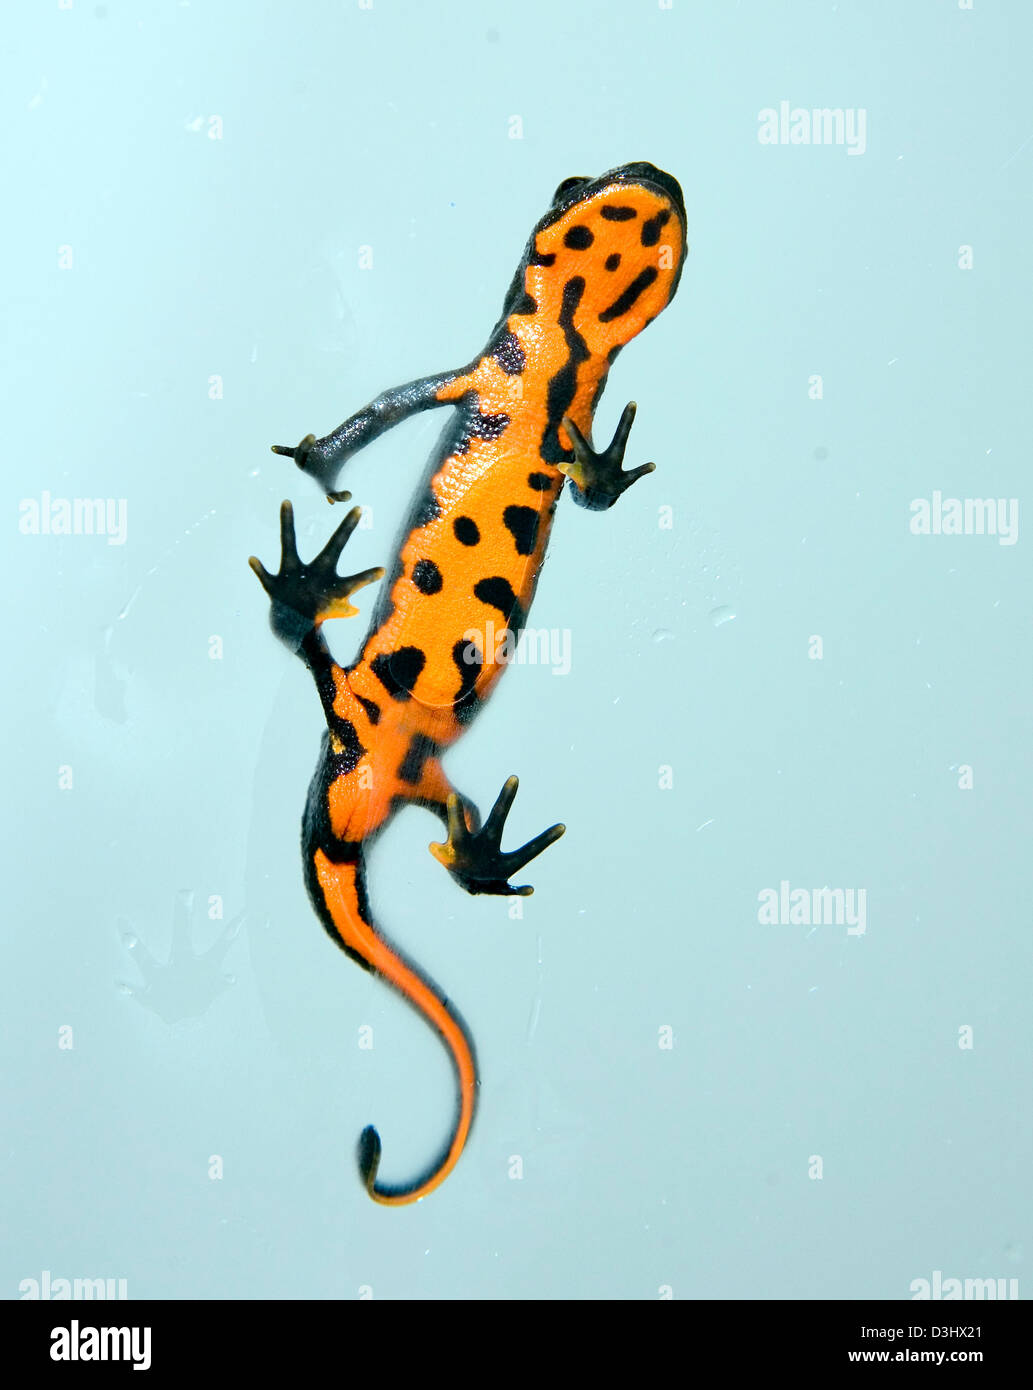 Un incendie Bellied Newt à Folly farm Pembrokeshire dans l'ouest du pays de Galles. Photo Stock